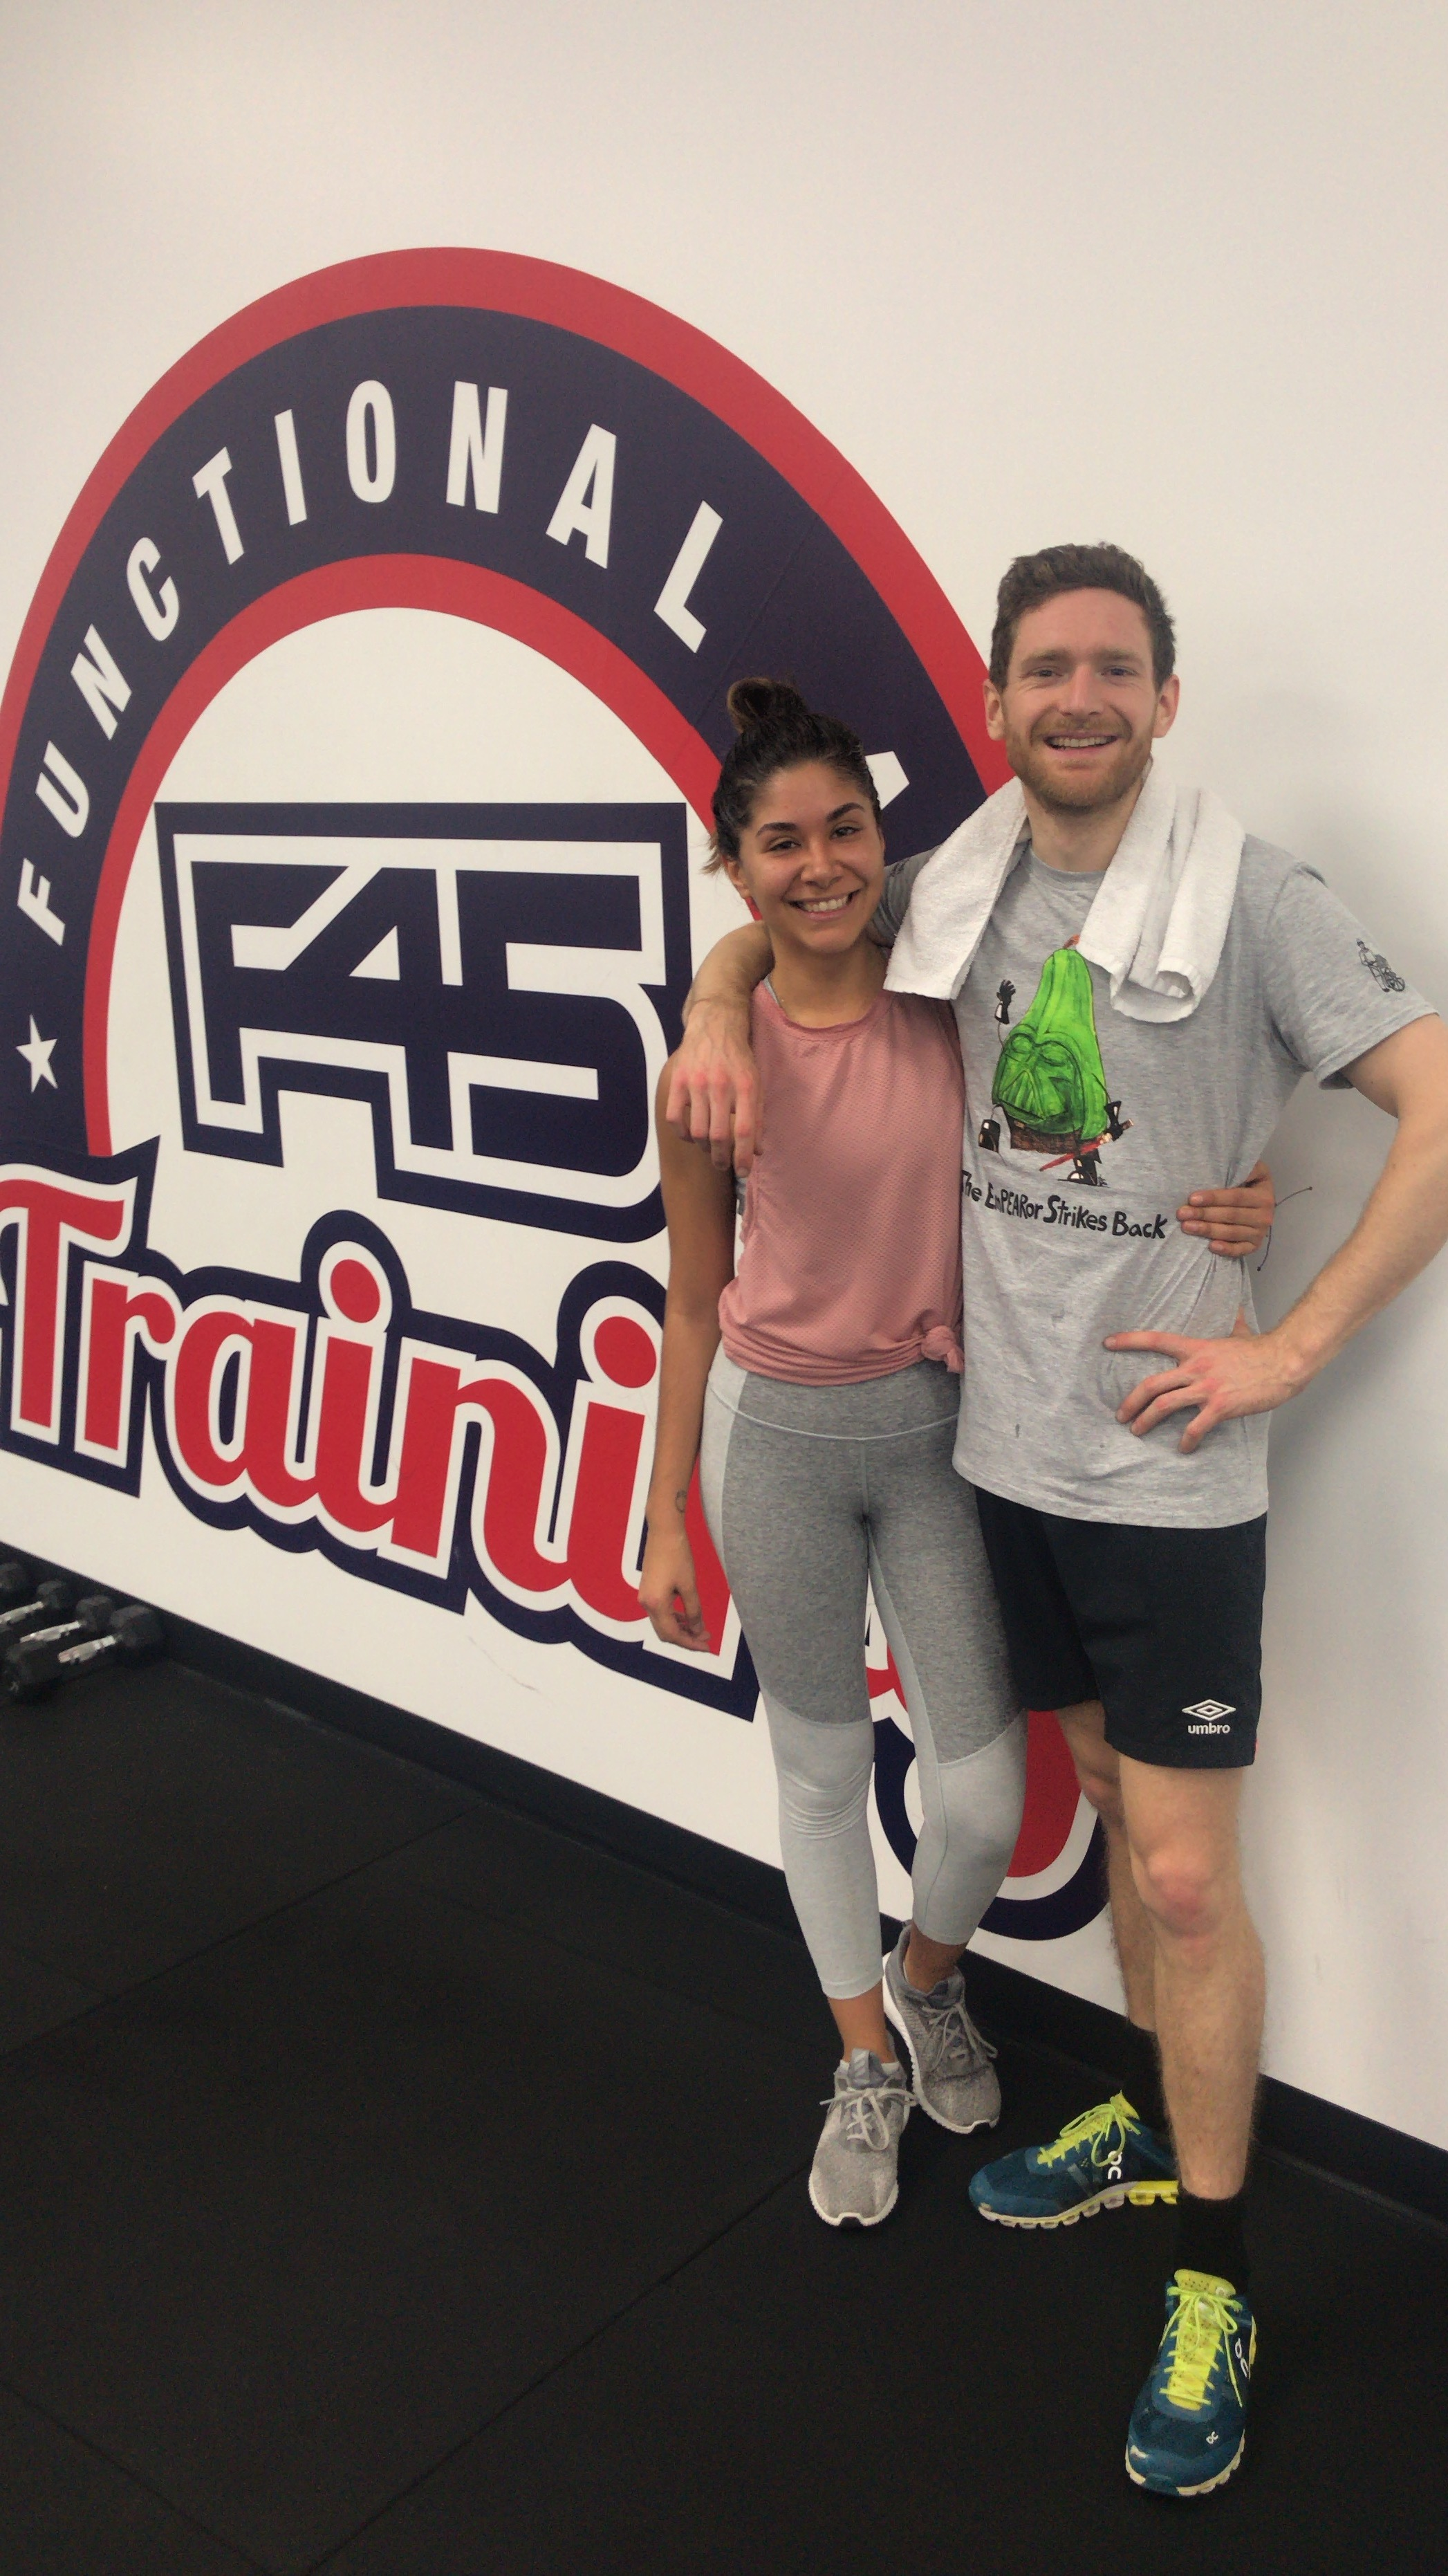 f45training  donmills